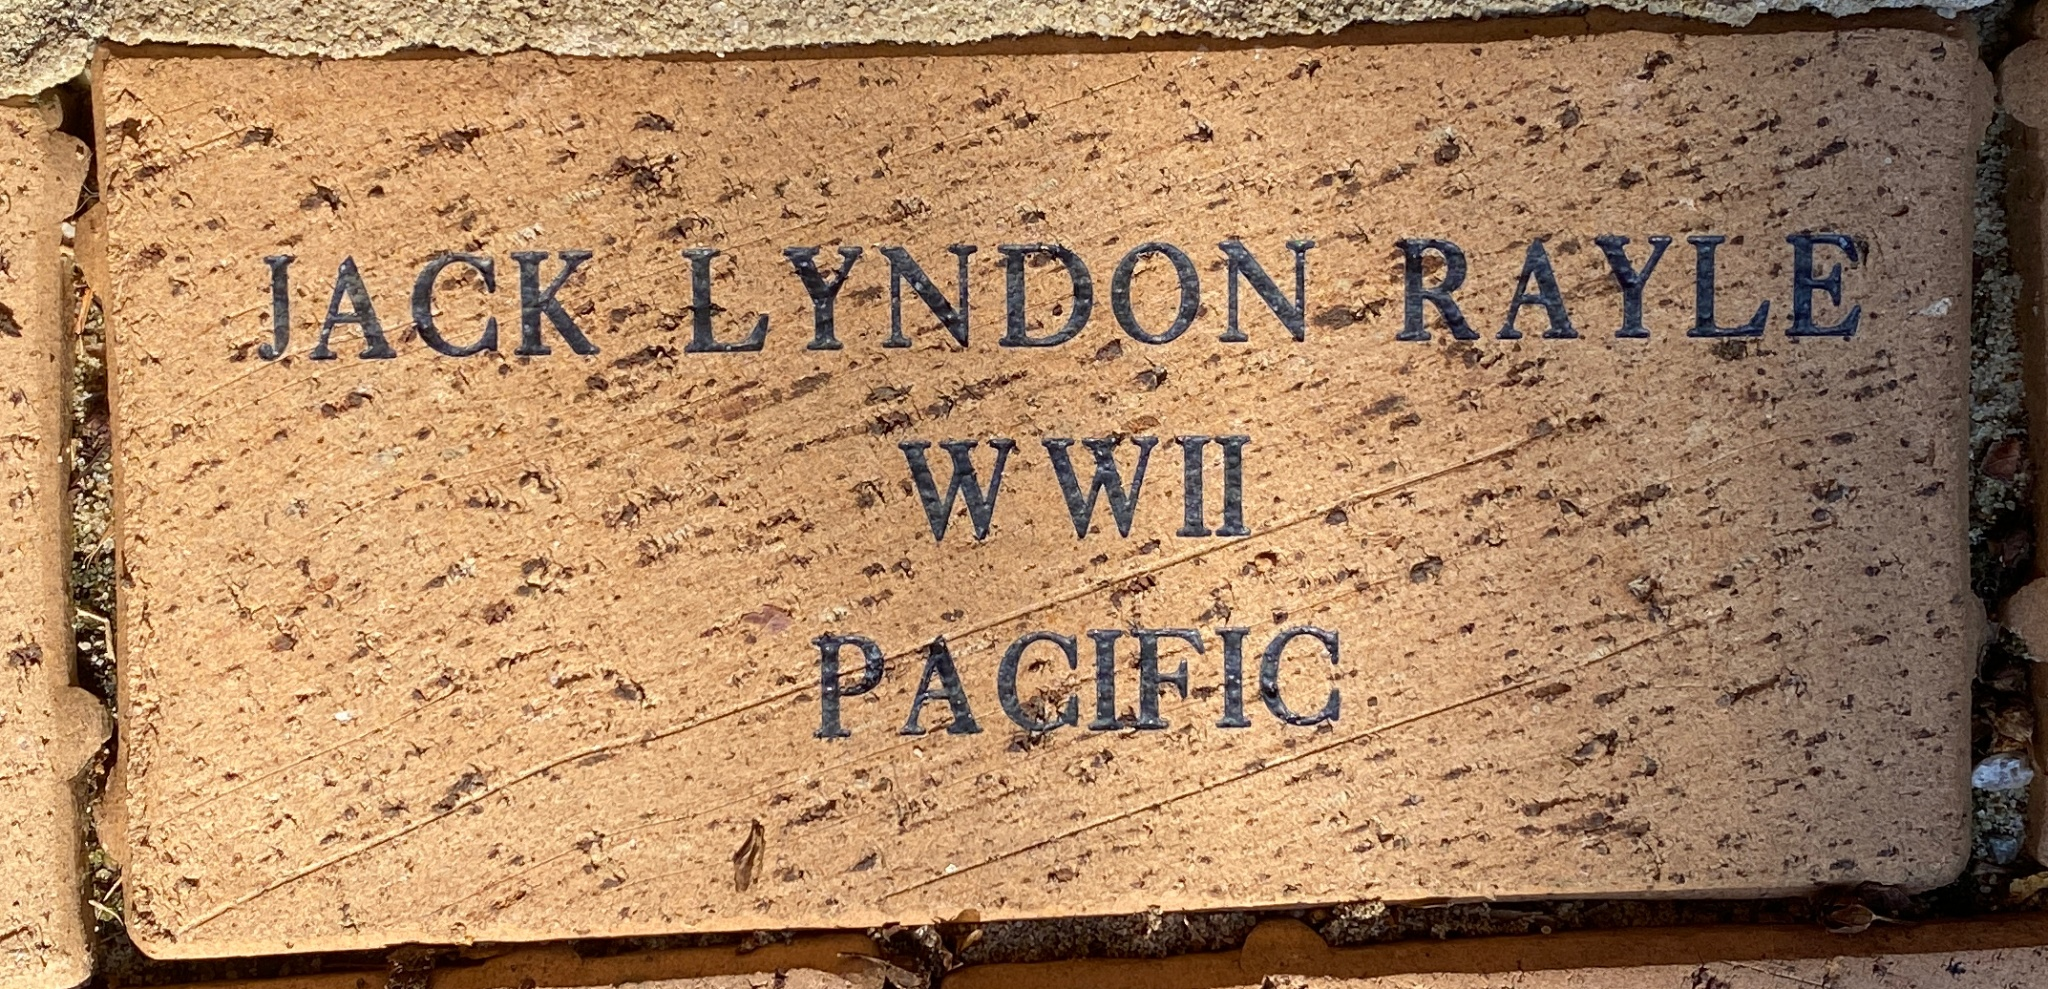 JACK LYNDON RAYLE WWII PACIFIC